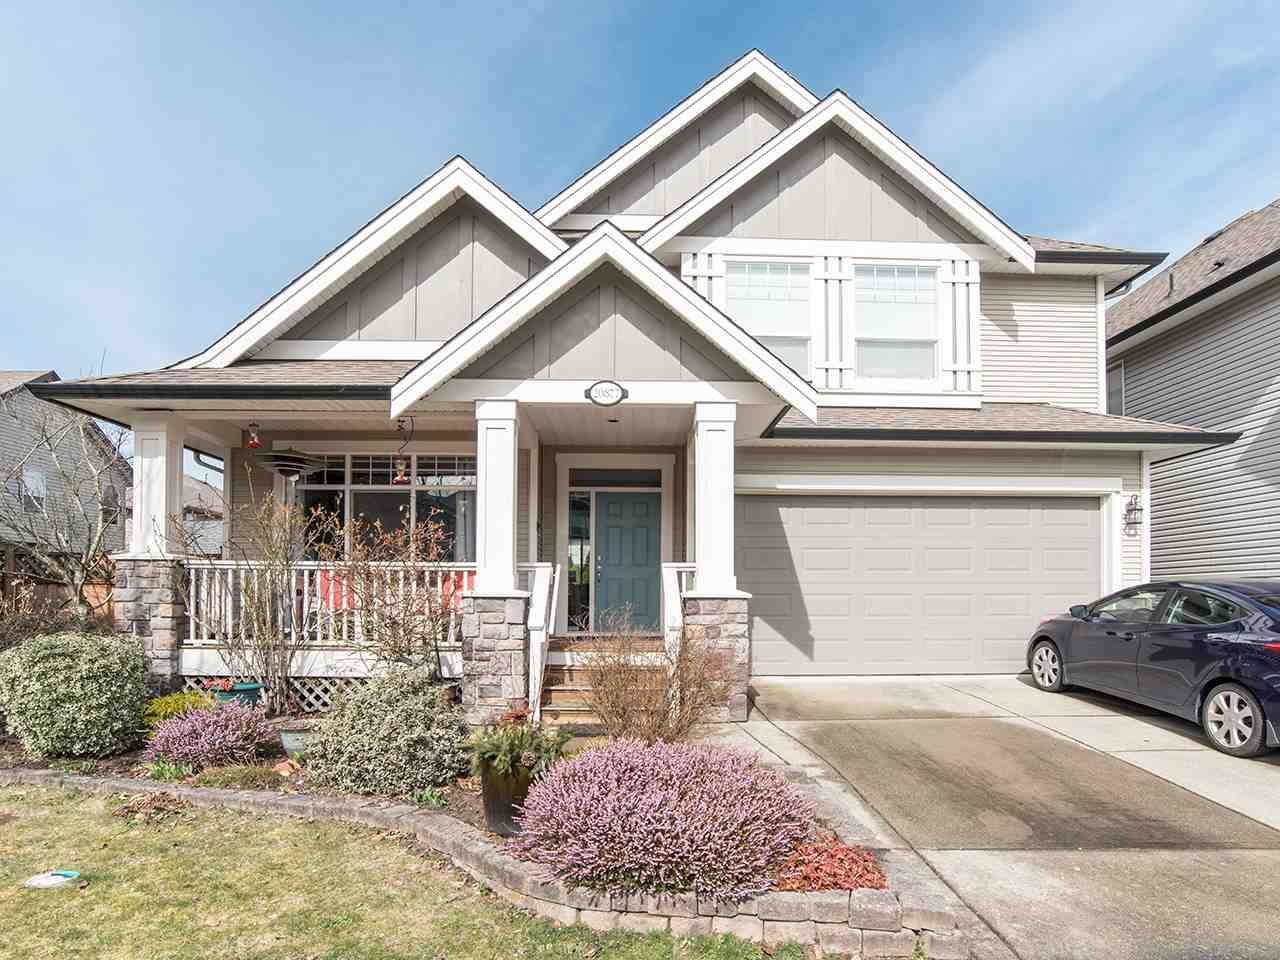 Main Photo: 20877 83B Avenue in Langley: Willoughby Heights House for sale : MLS®# R2552880